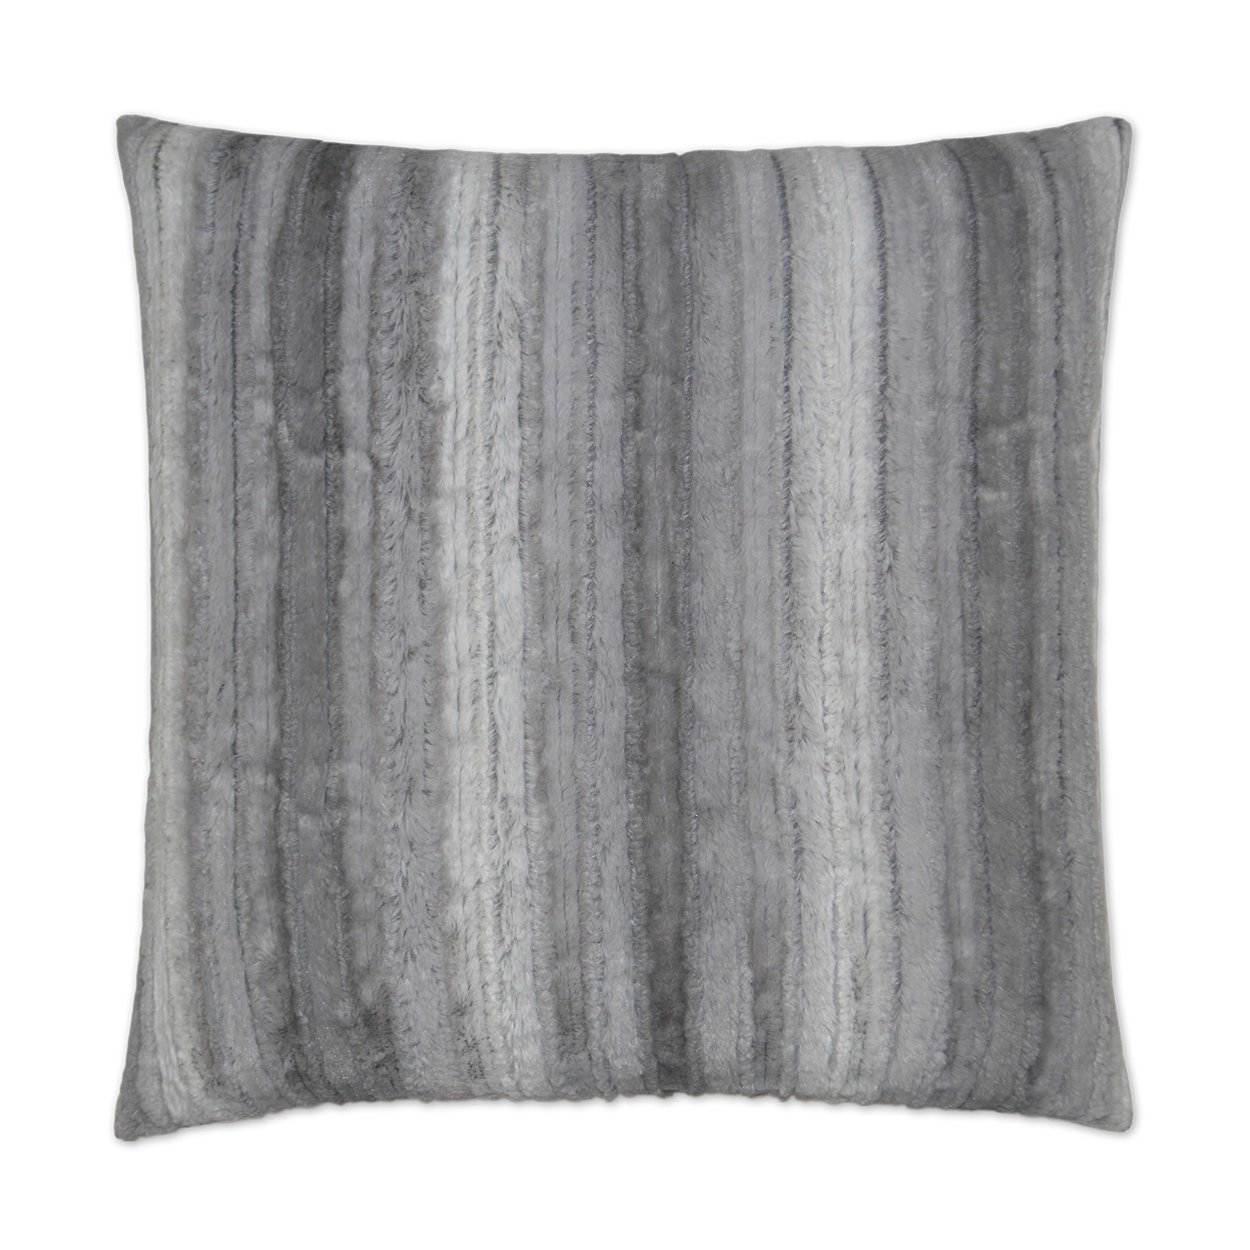 Raya Fur Decorative Pillow